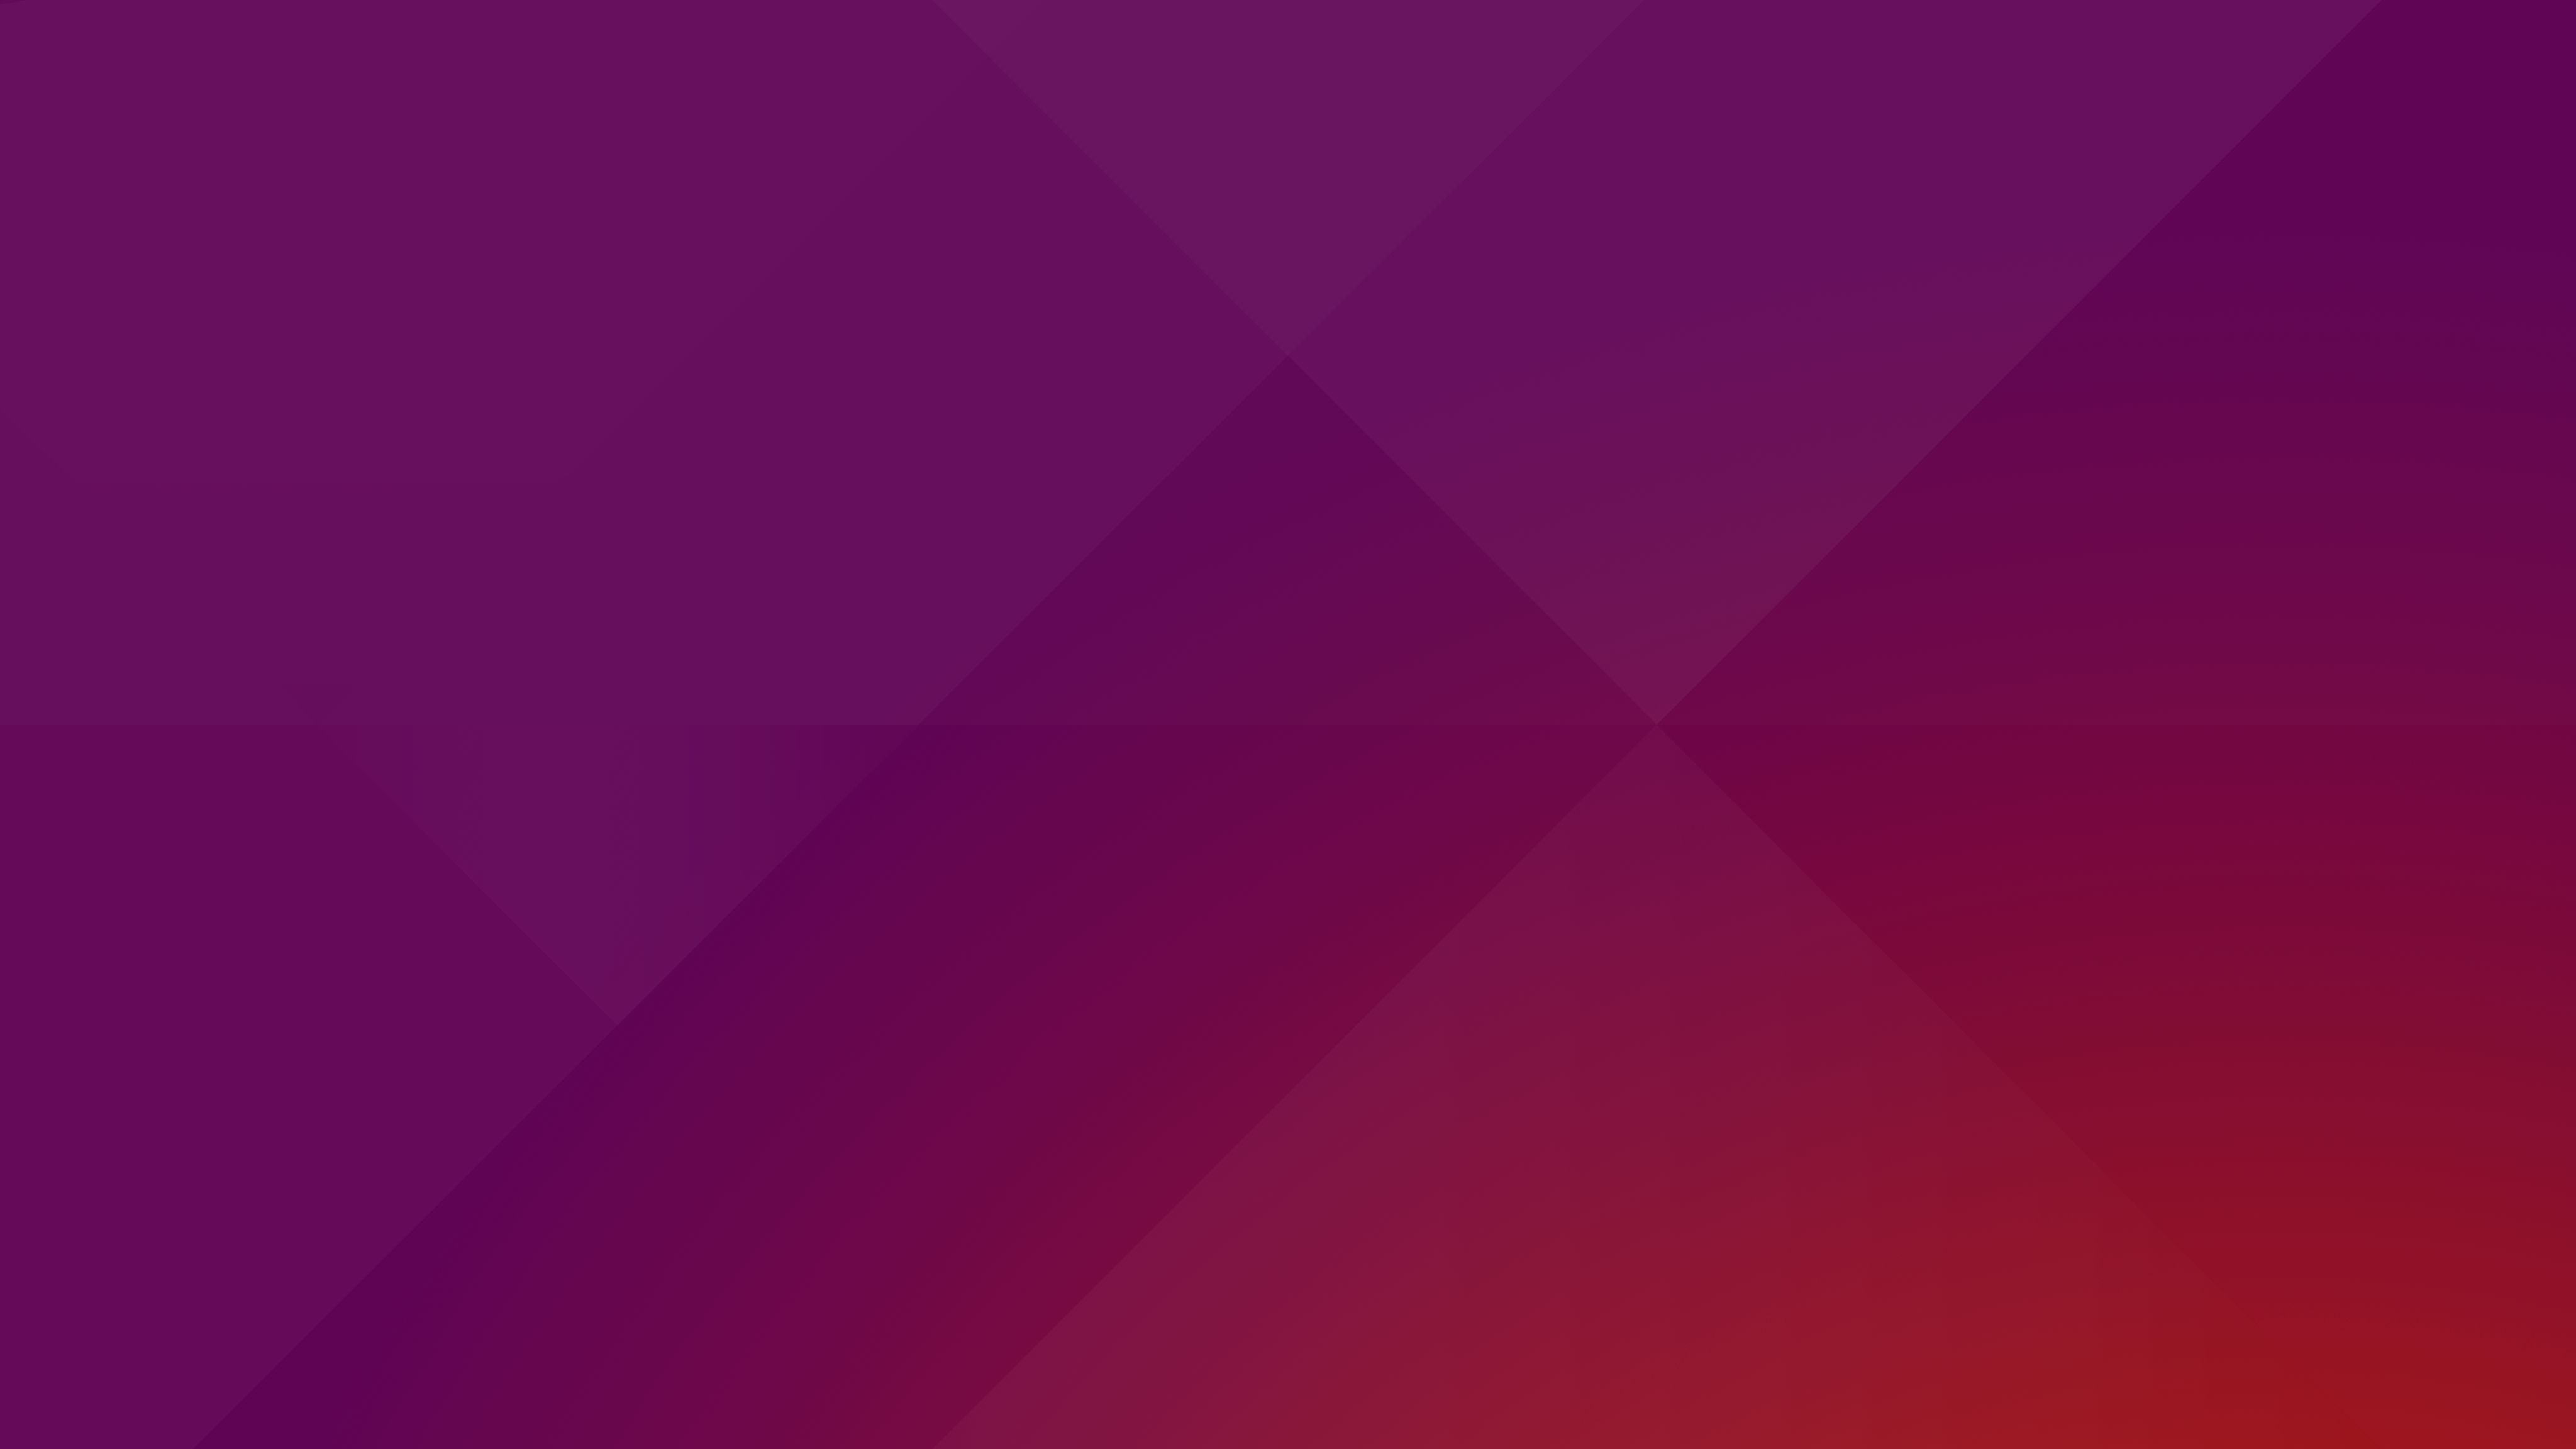 This is the Default Desktop Wallpaper for Ubuntu 1510 Reliable 4096x2304